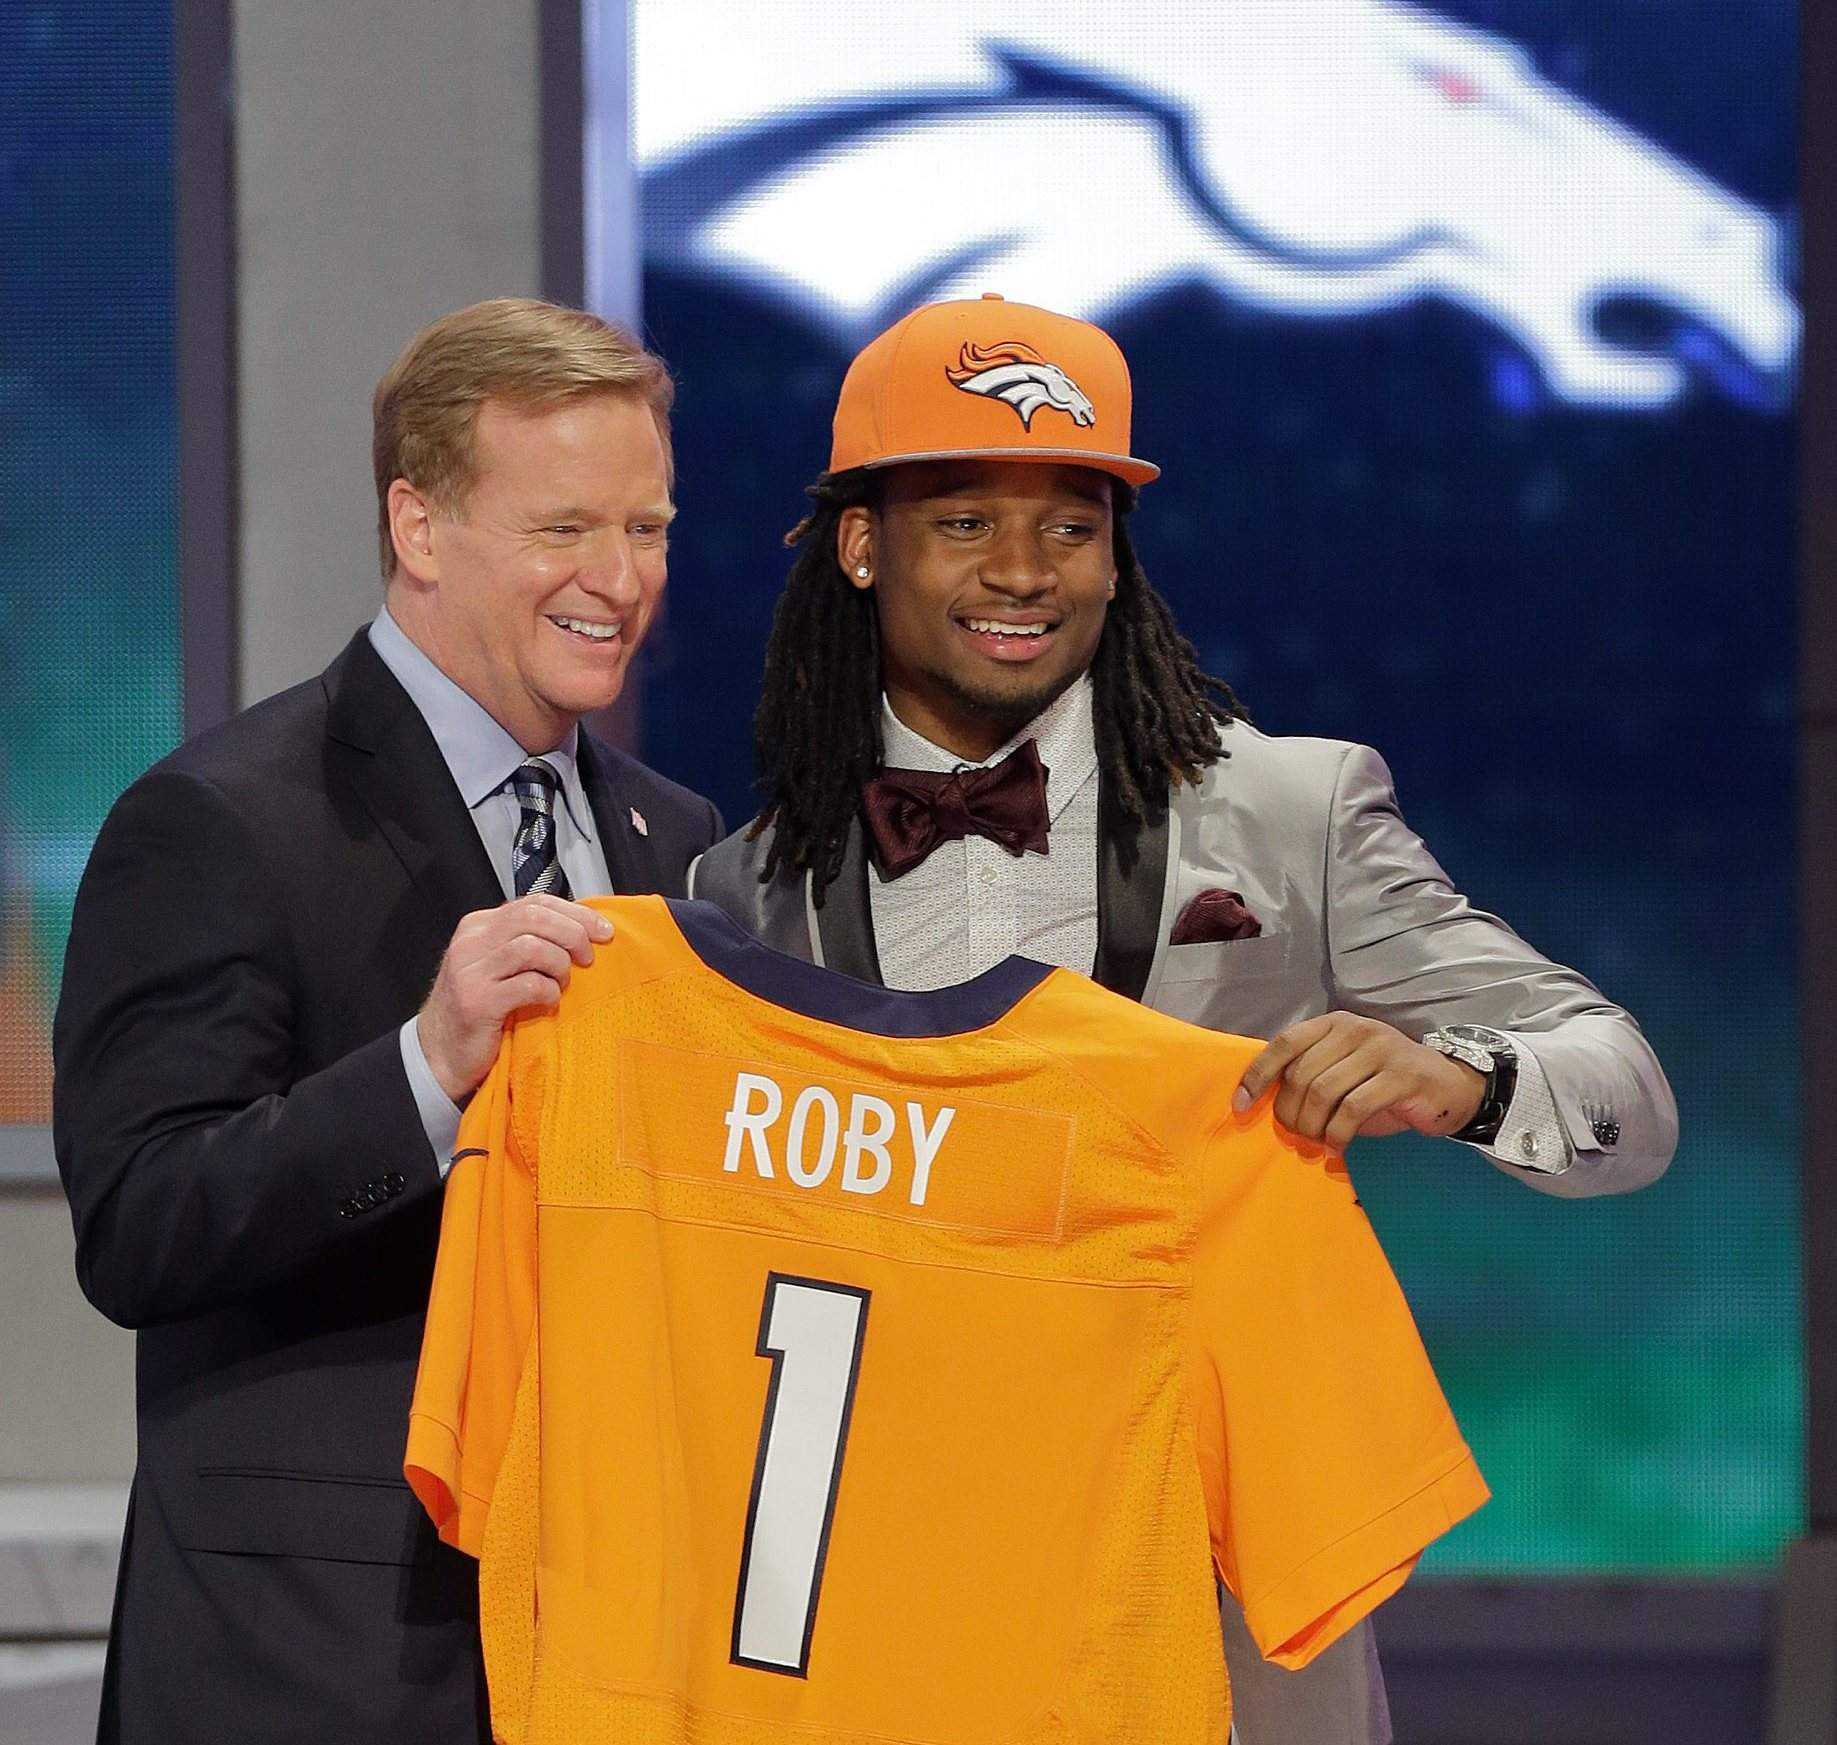 dcd4a958b Broncos corner Roby with the 31st pick